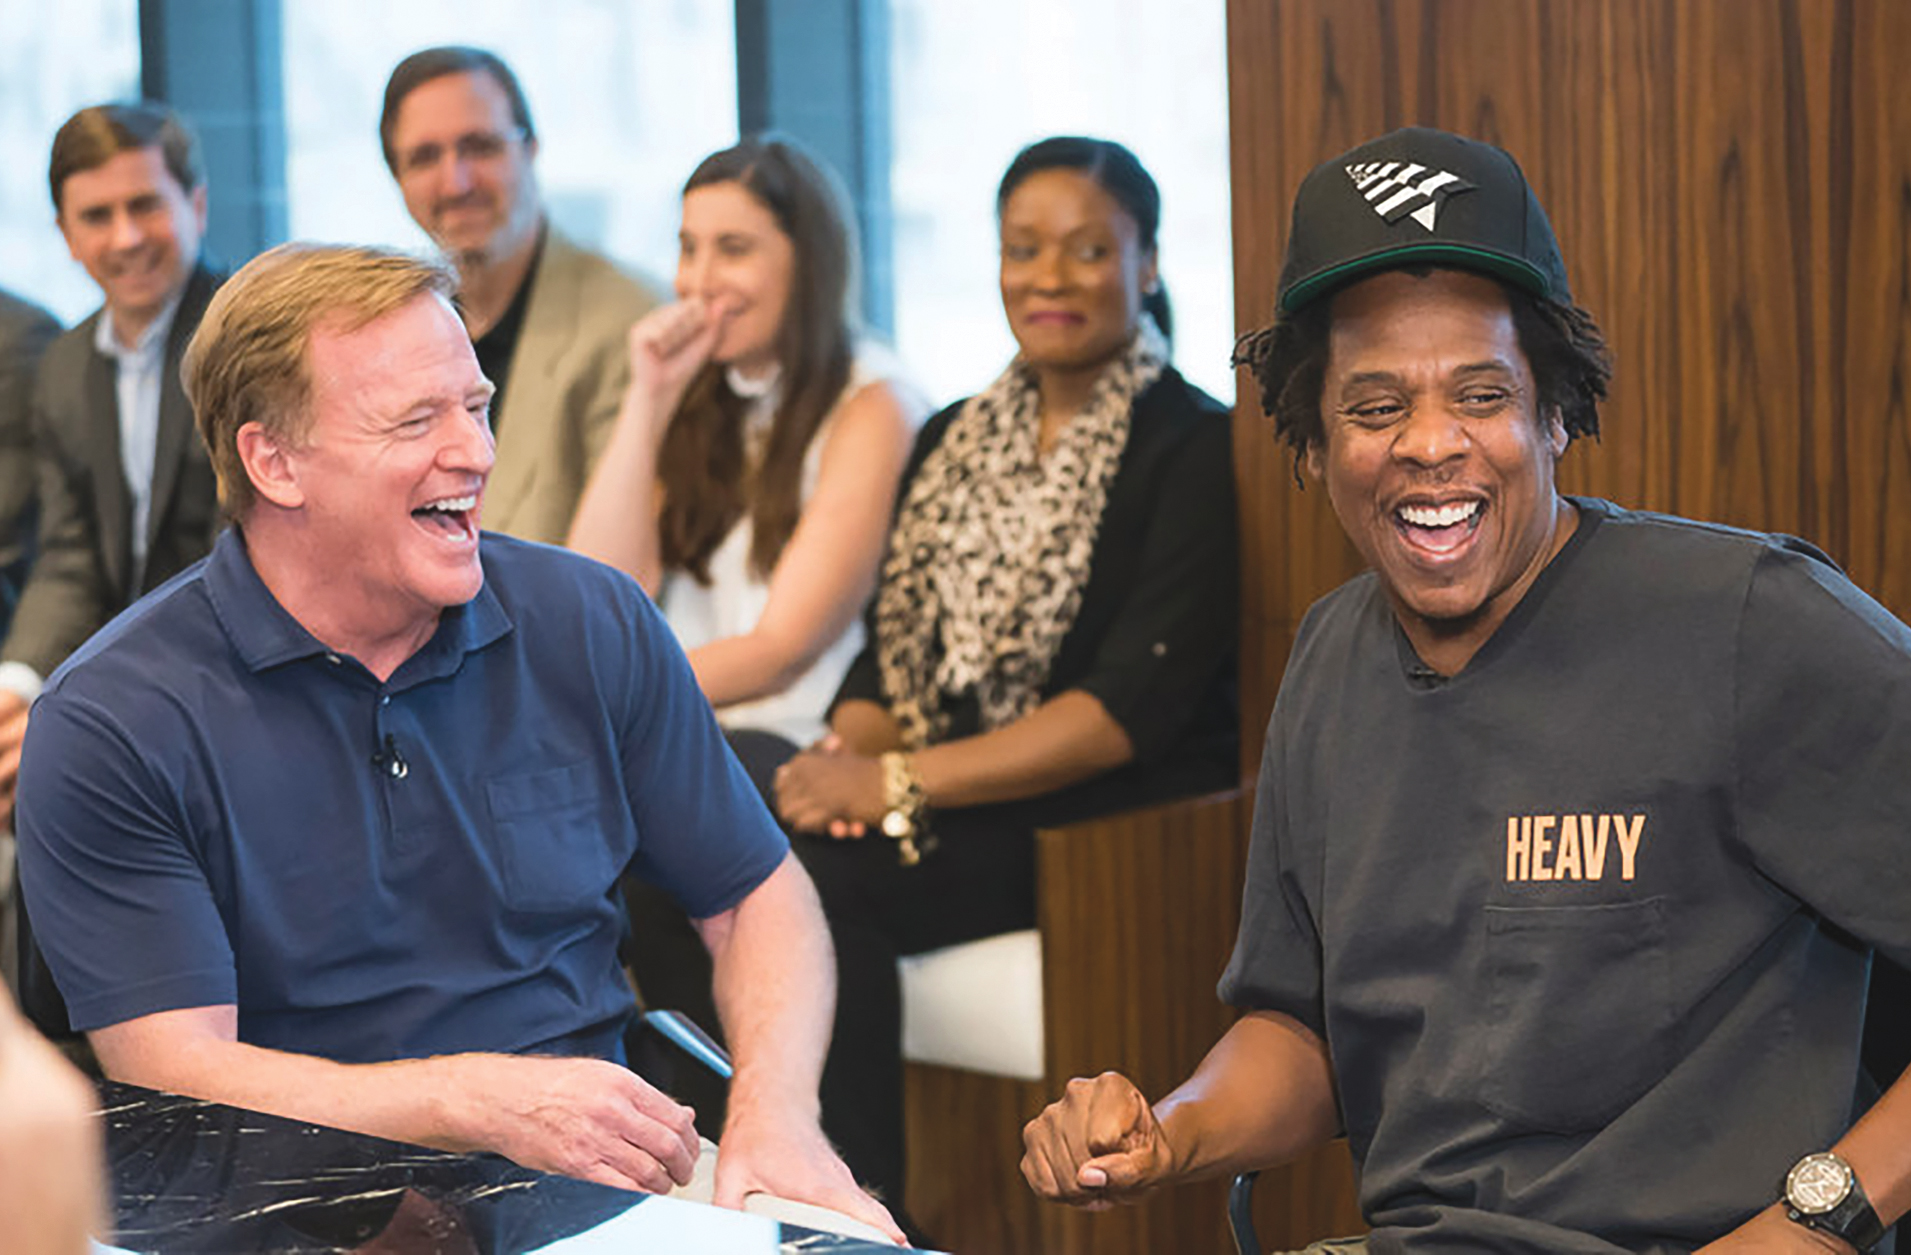 NFL commissioner Roger Goodell and Jay-Z greet each other last week at Roc Nation in New York City. (Photo Credit Kevin Mazur Getty Images for Roc Nation)